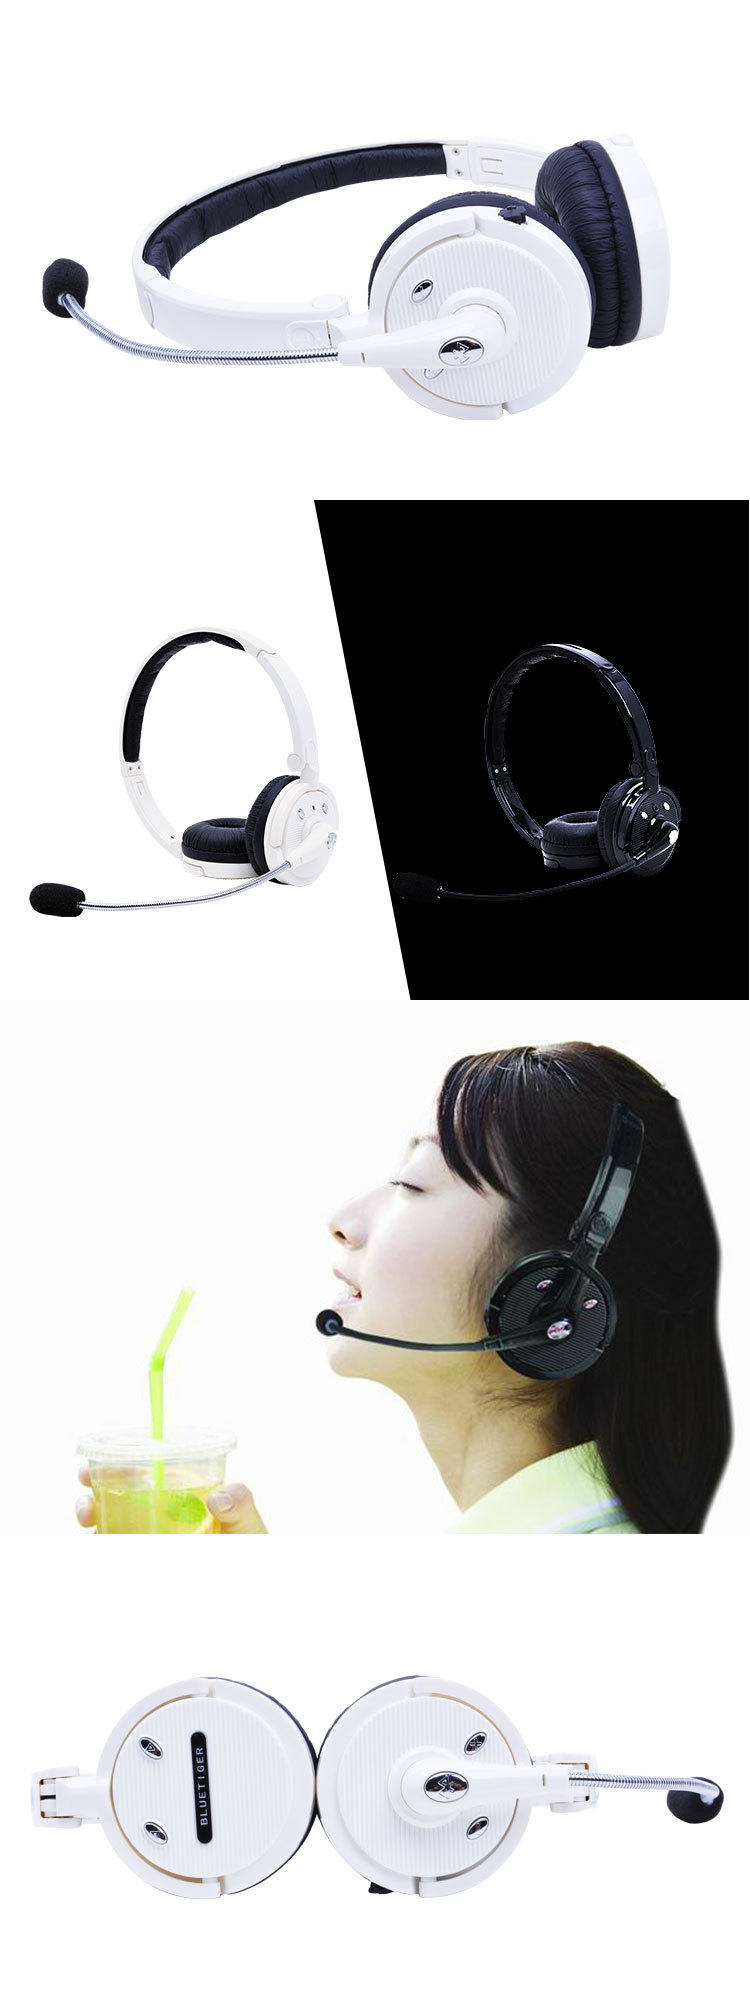 superior wireless headphone design  manufacturer for sports-1